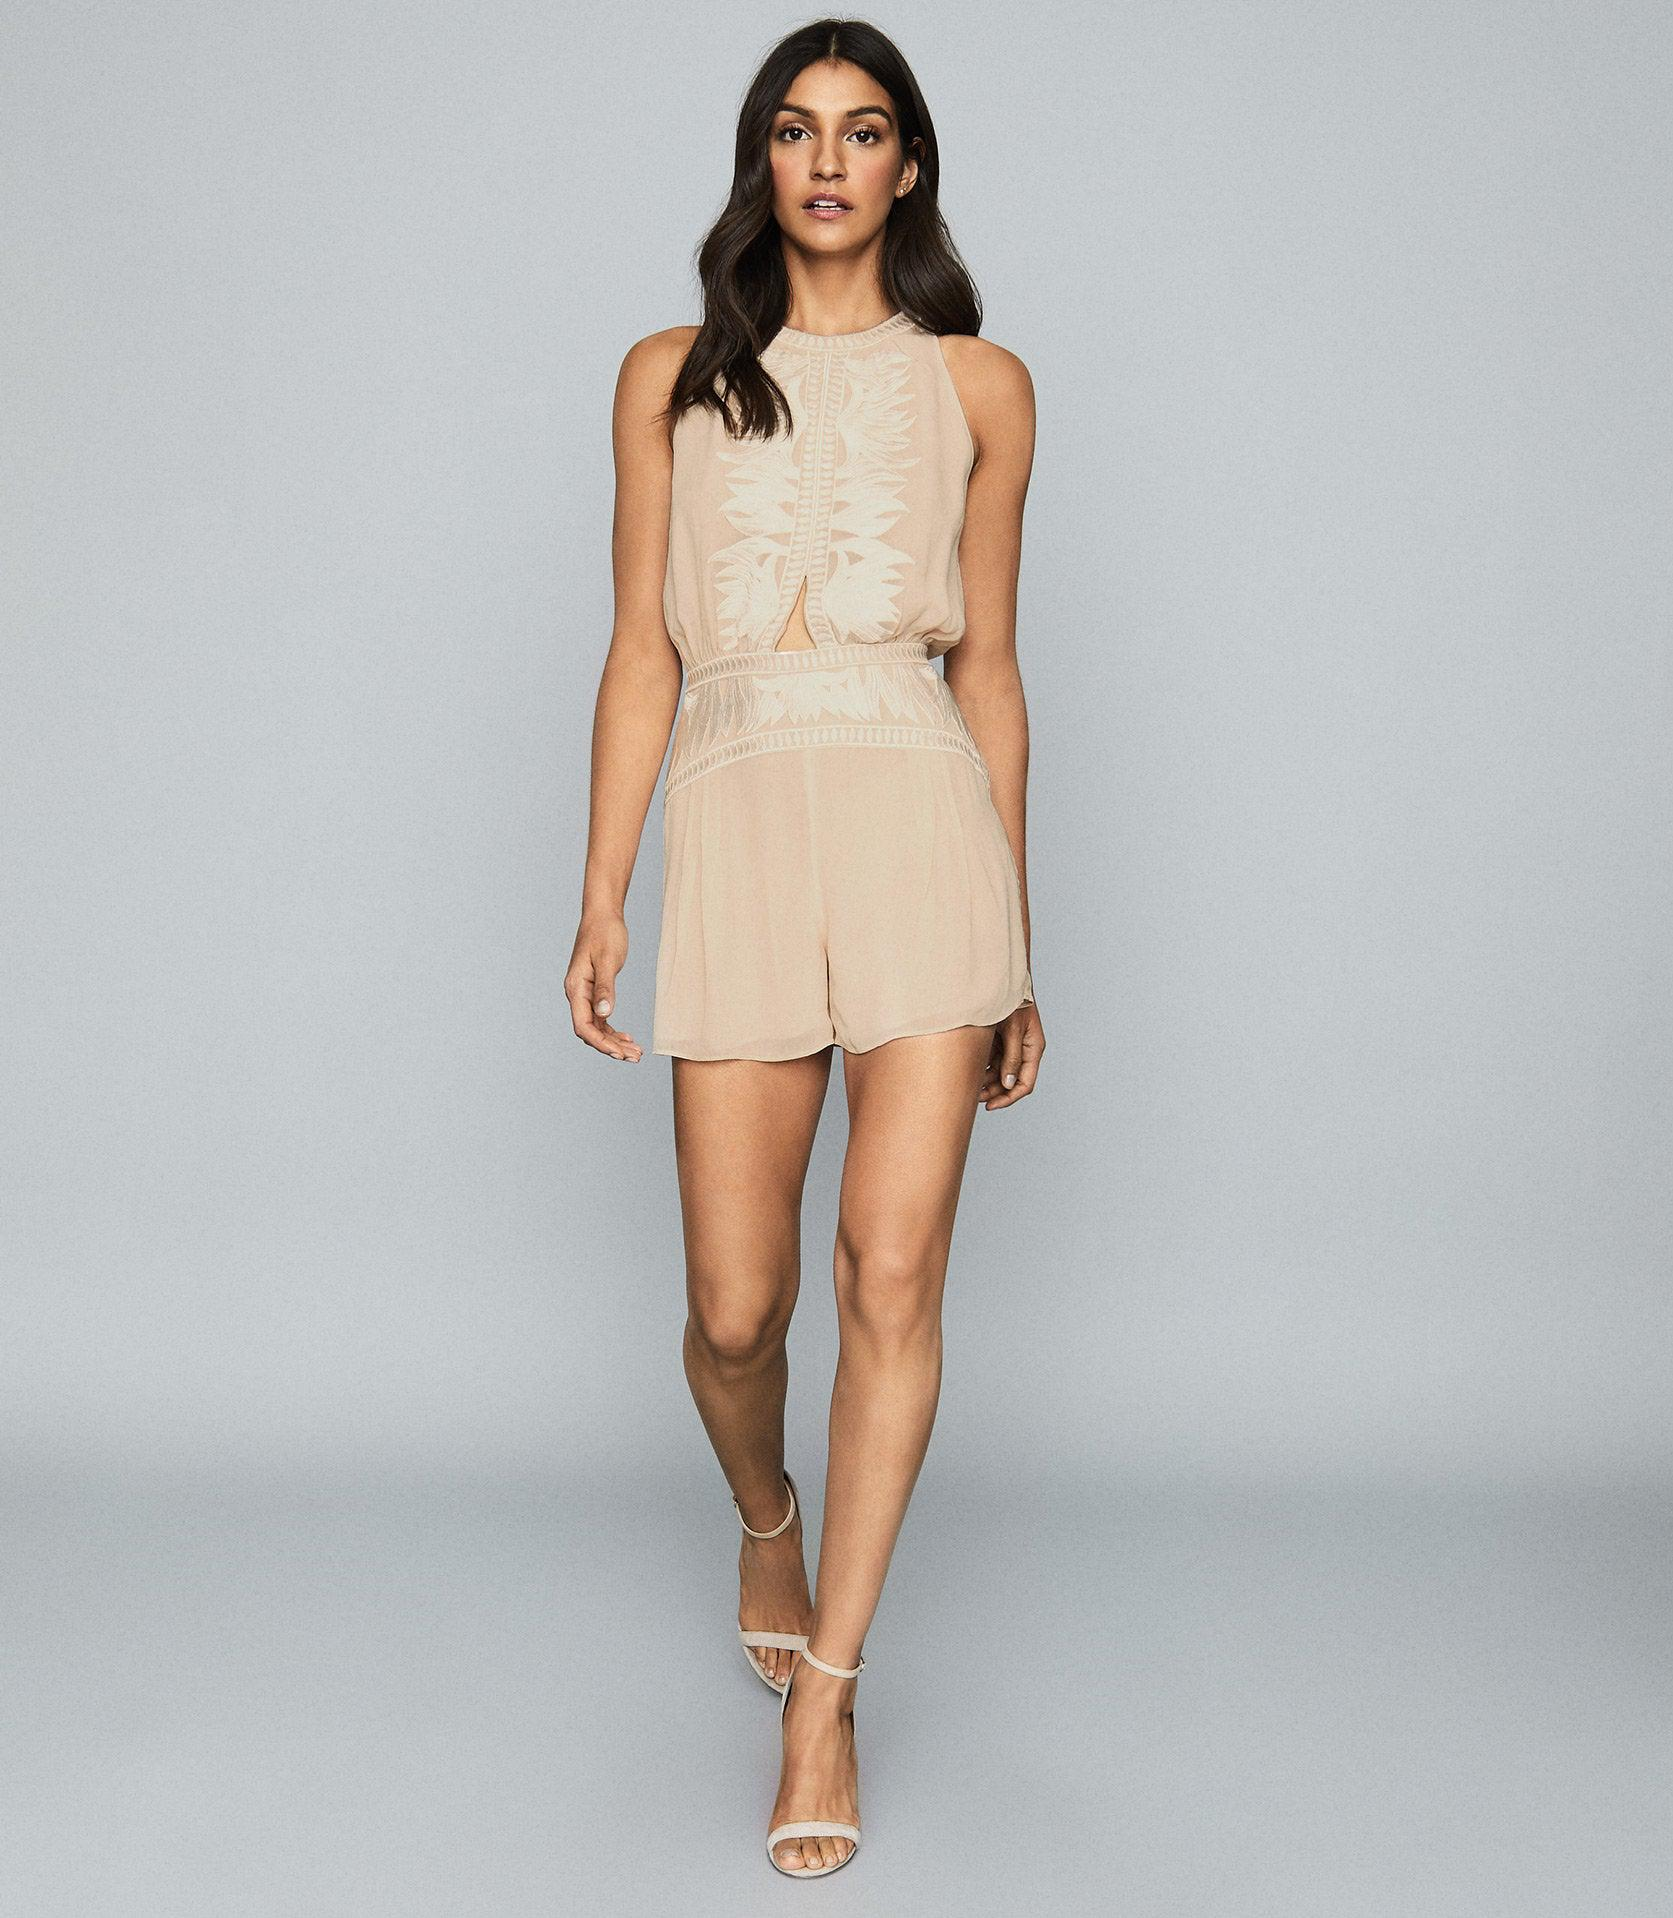 COCO - EMBROIDERED RESORTWEAR PLAYSUIT